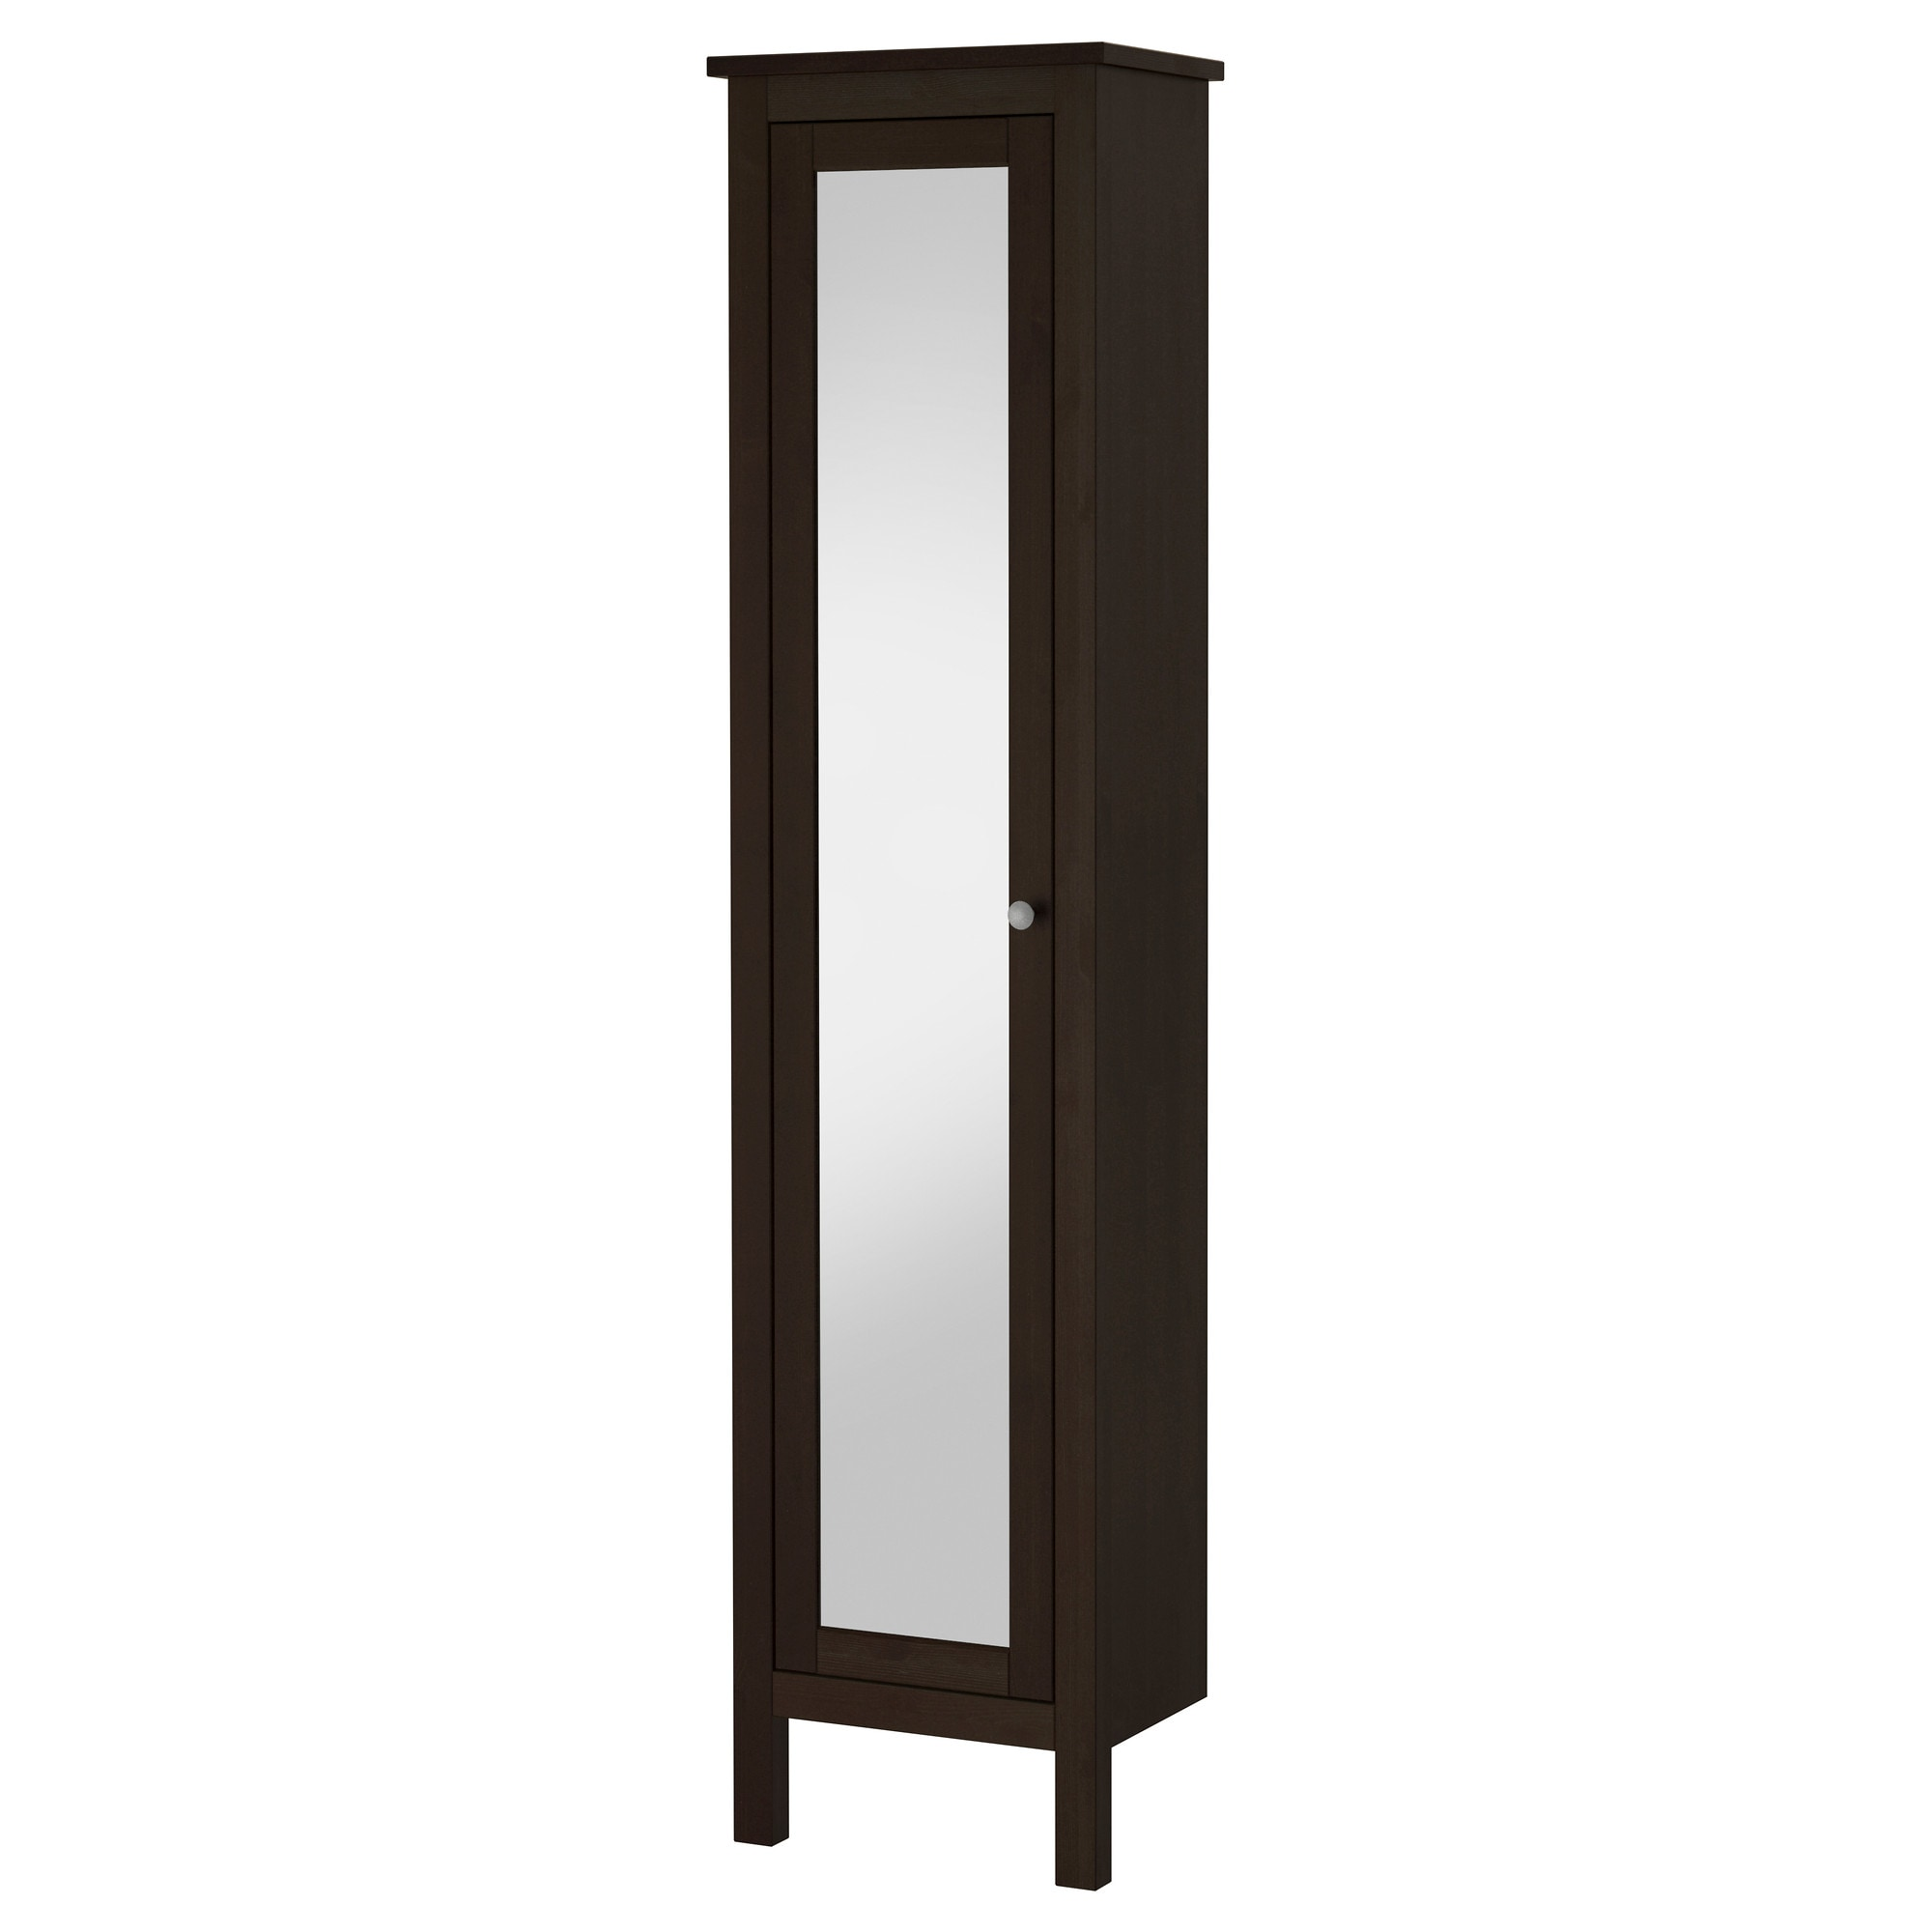 hemnes high cabinet with mirror door black brown stain width 19 1